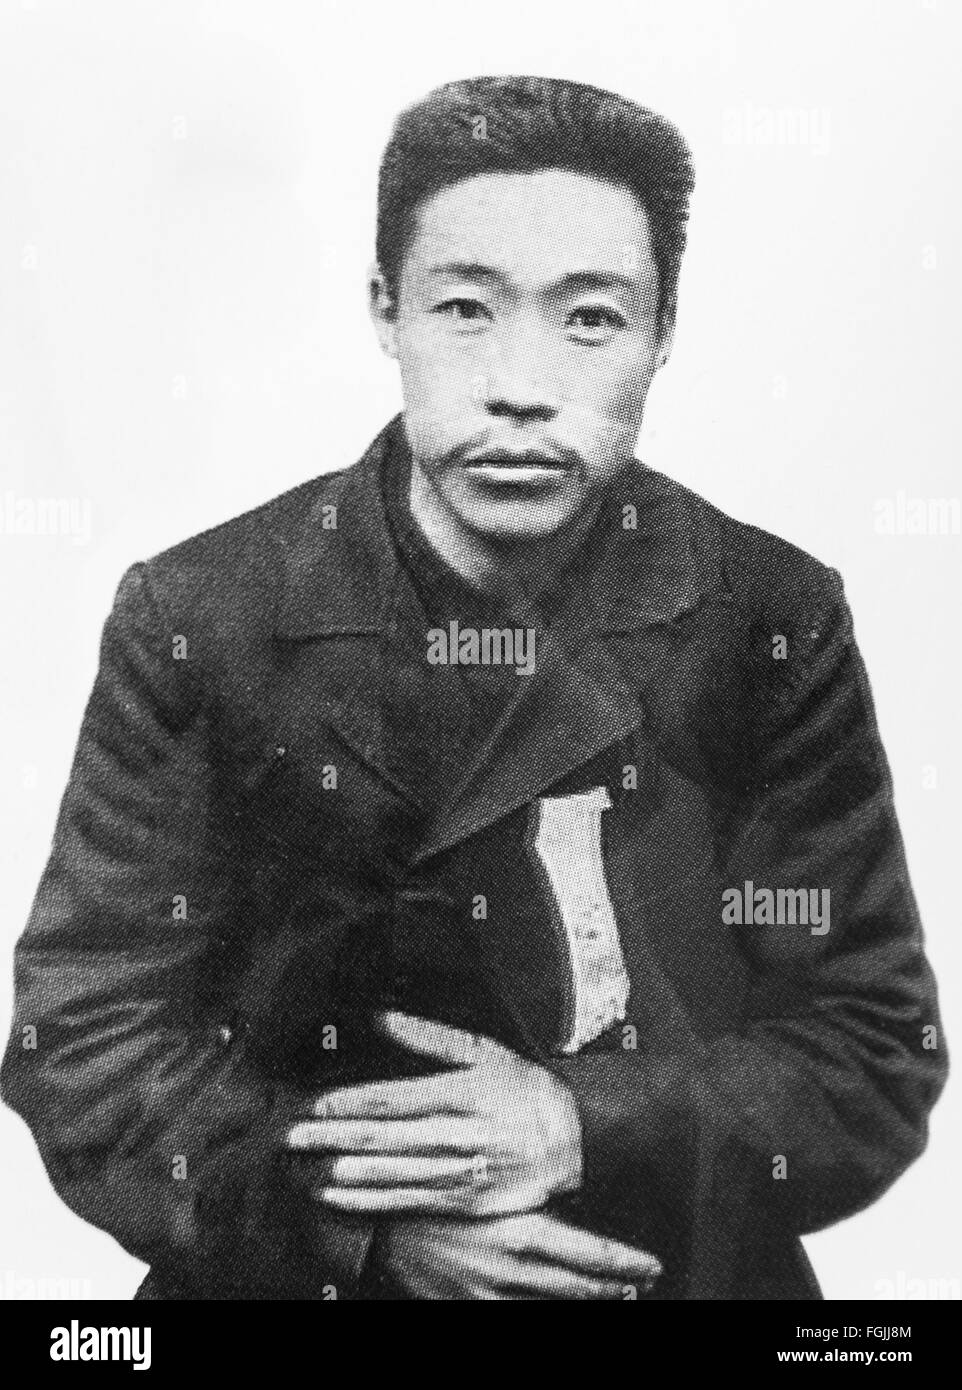 An Jung-geun (September 2, 1879 – March 26, 1910 ) Korean independence activist. On October 26, 1909, he assassinated - Stock Image